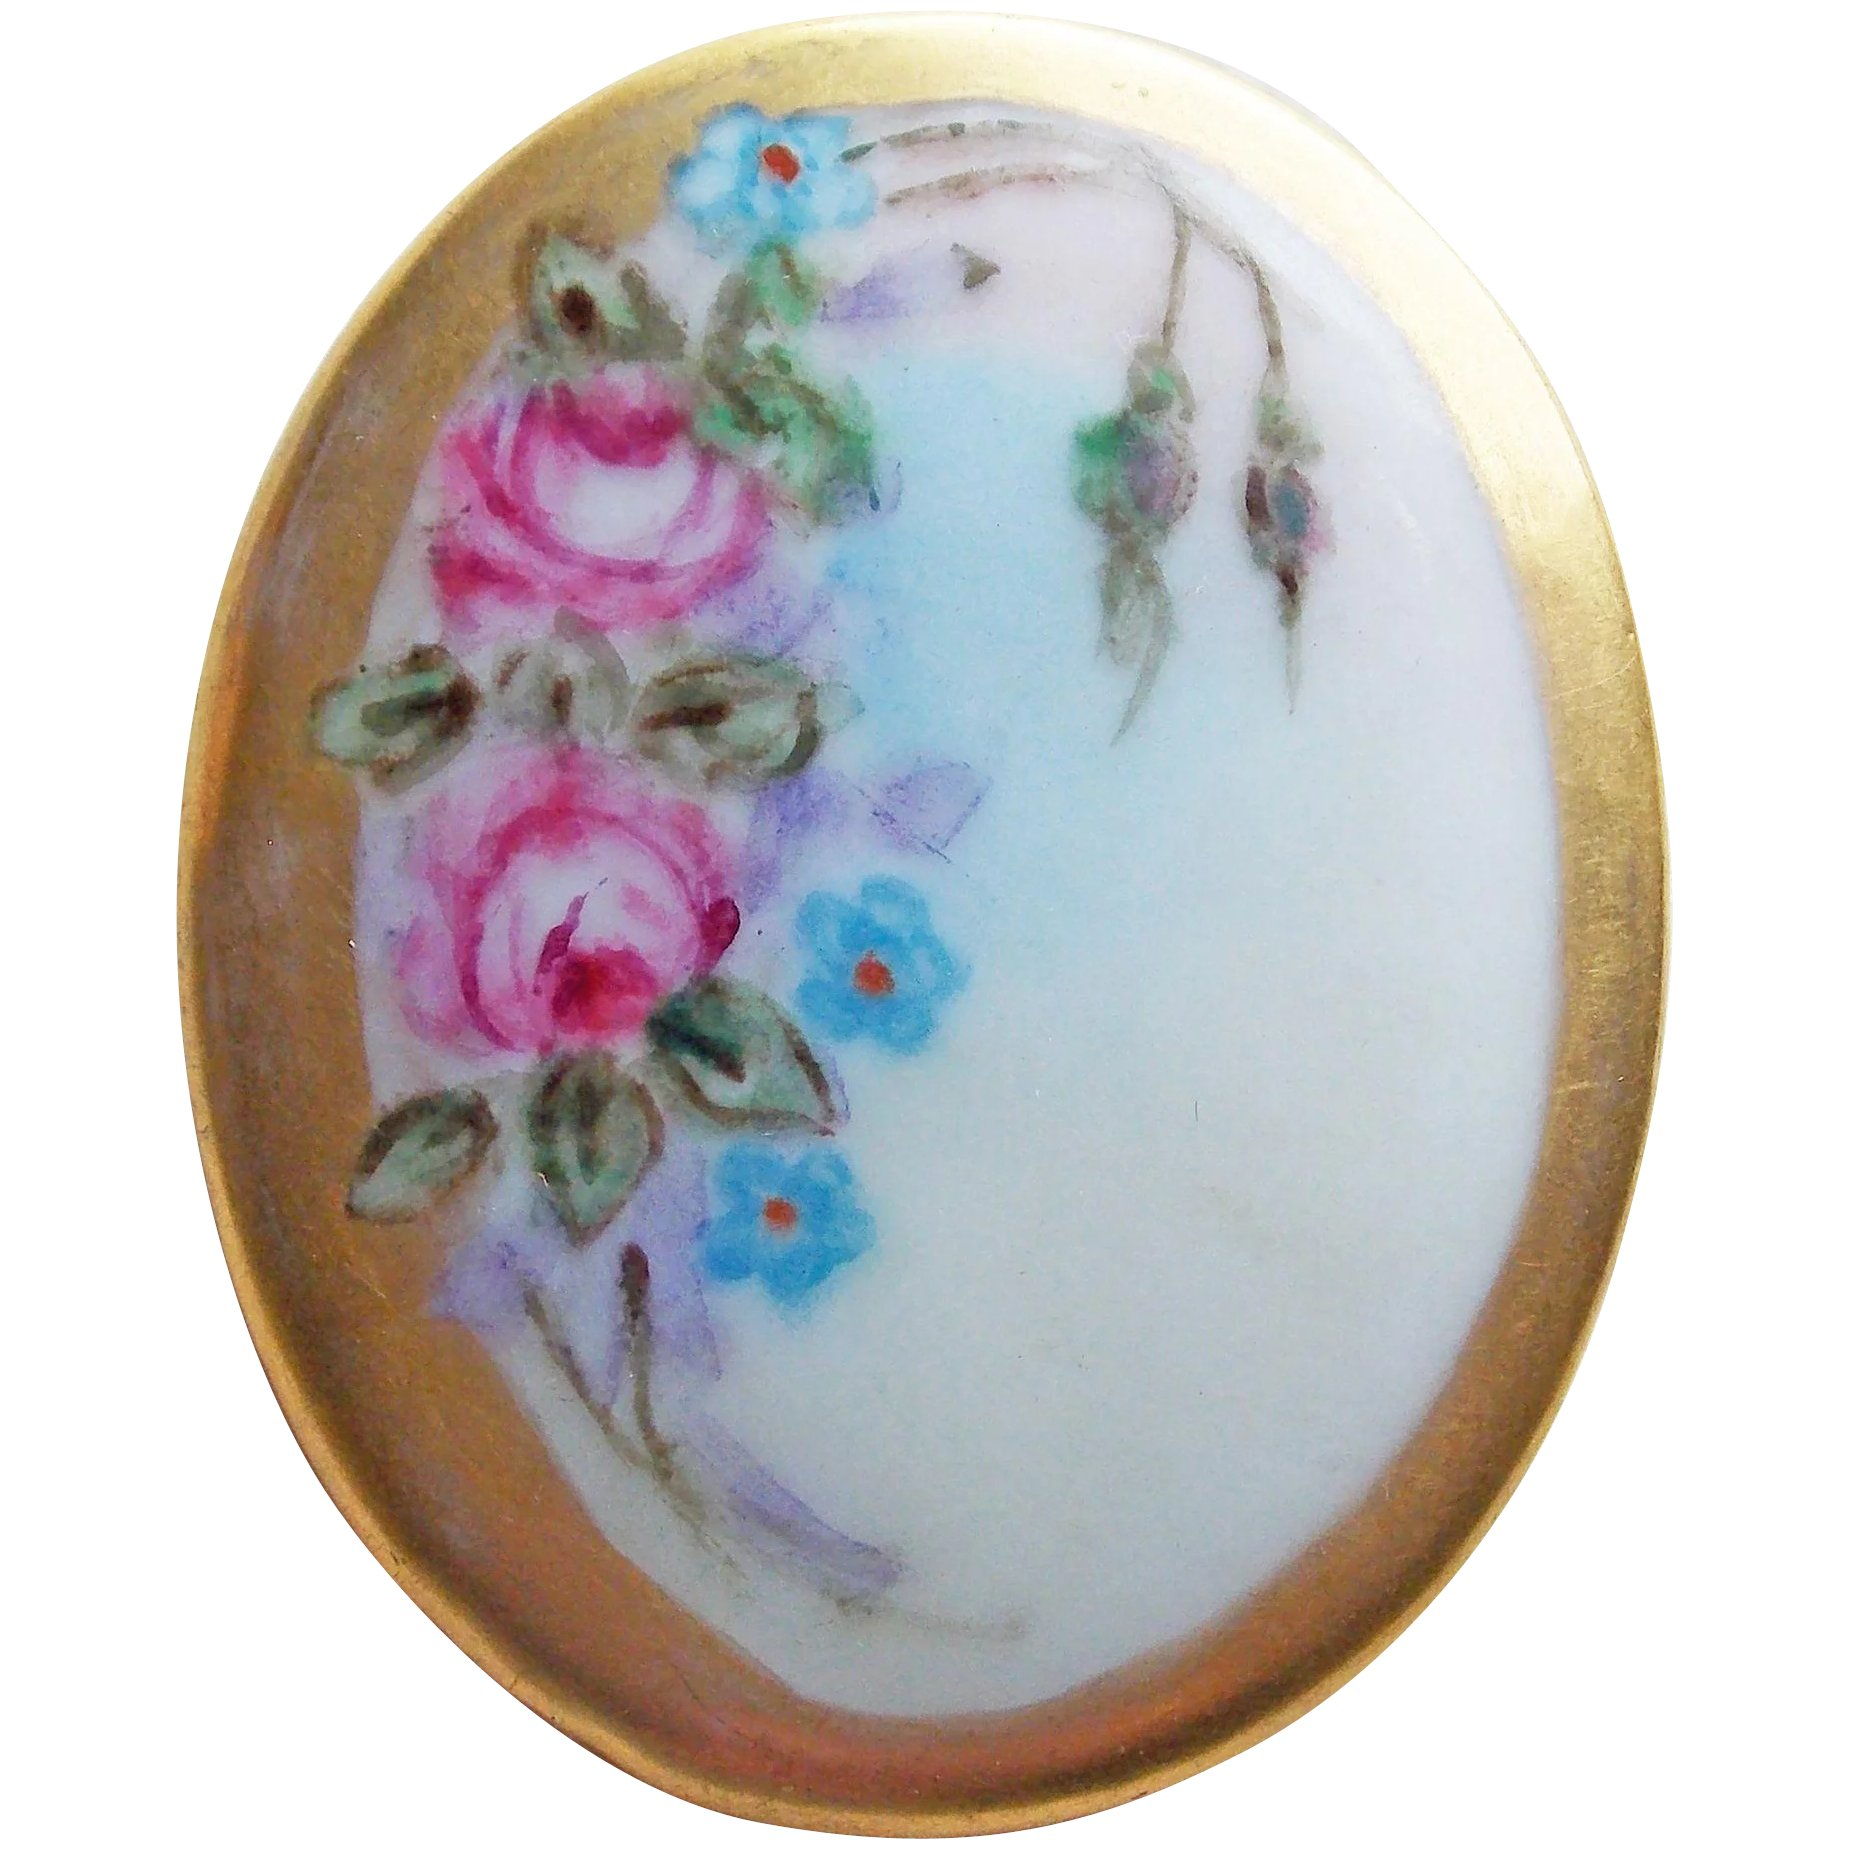 bisque porcelain brooch 3.2 cm \u00d8 total 8 Grams from Germany in very good vintage condition Vintage 1950s Handpainted pastel colors roses